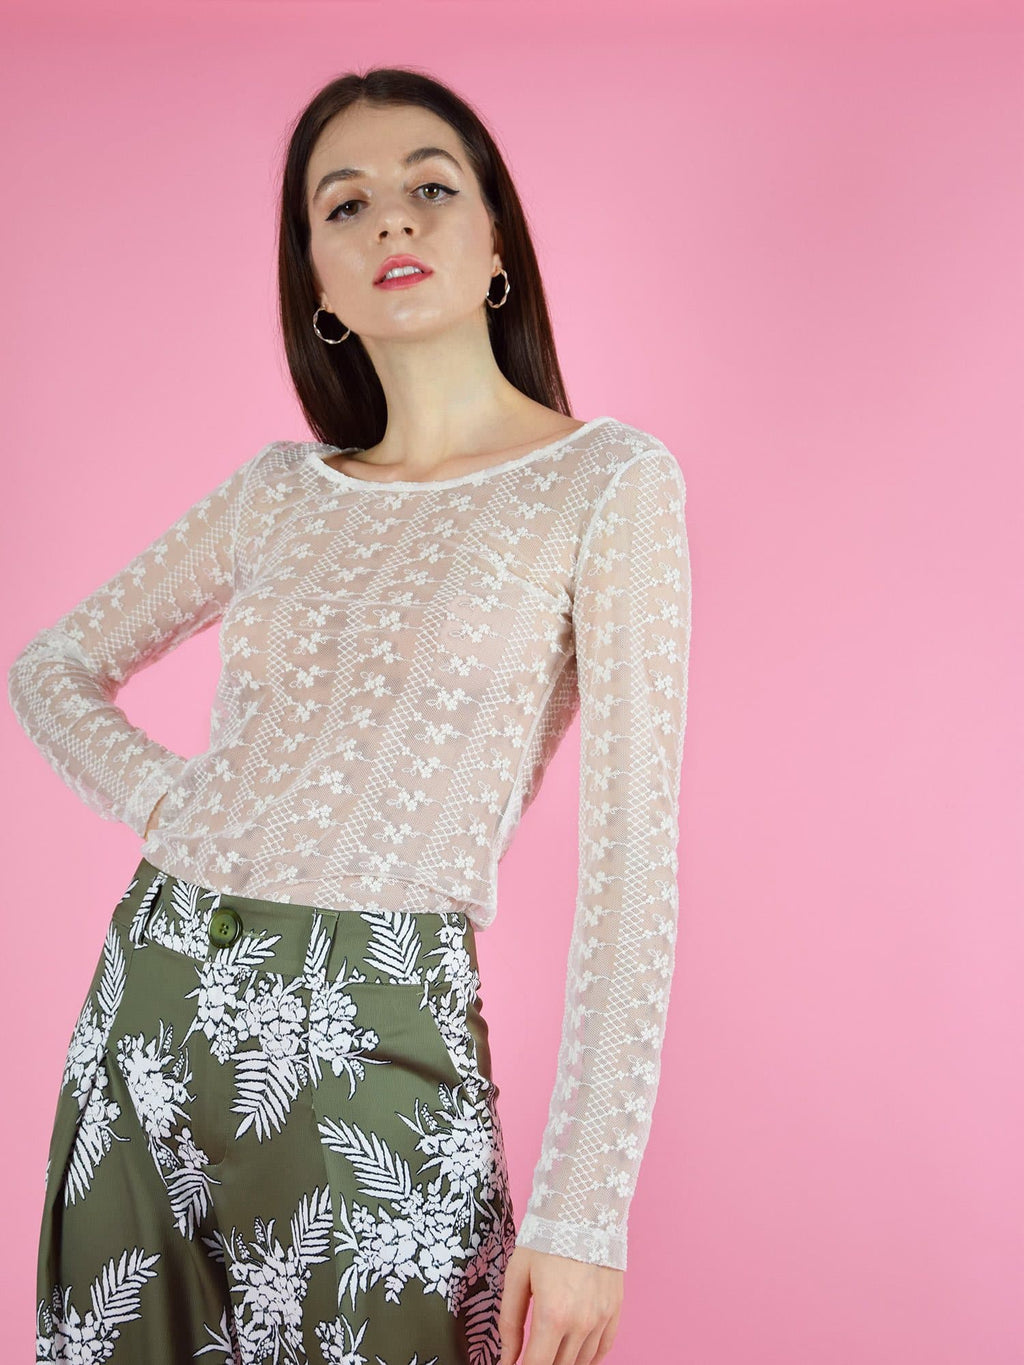 blonde gone rogue's daisy long sleeve lace top in white